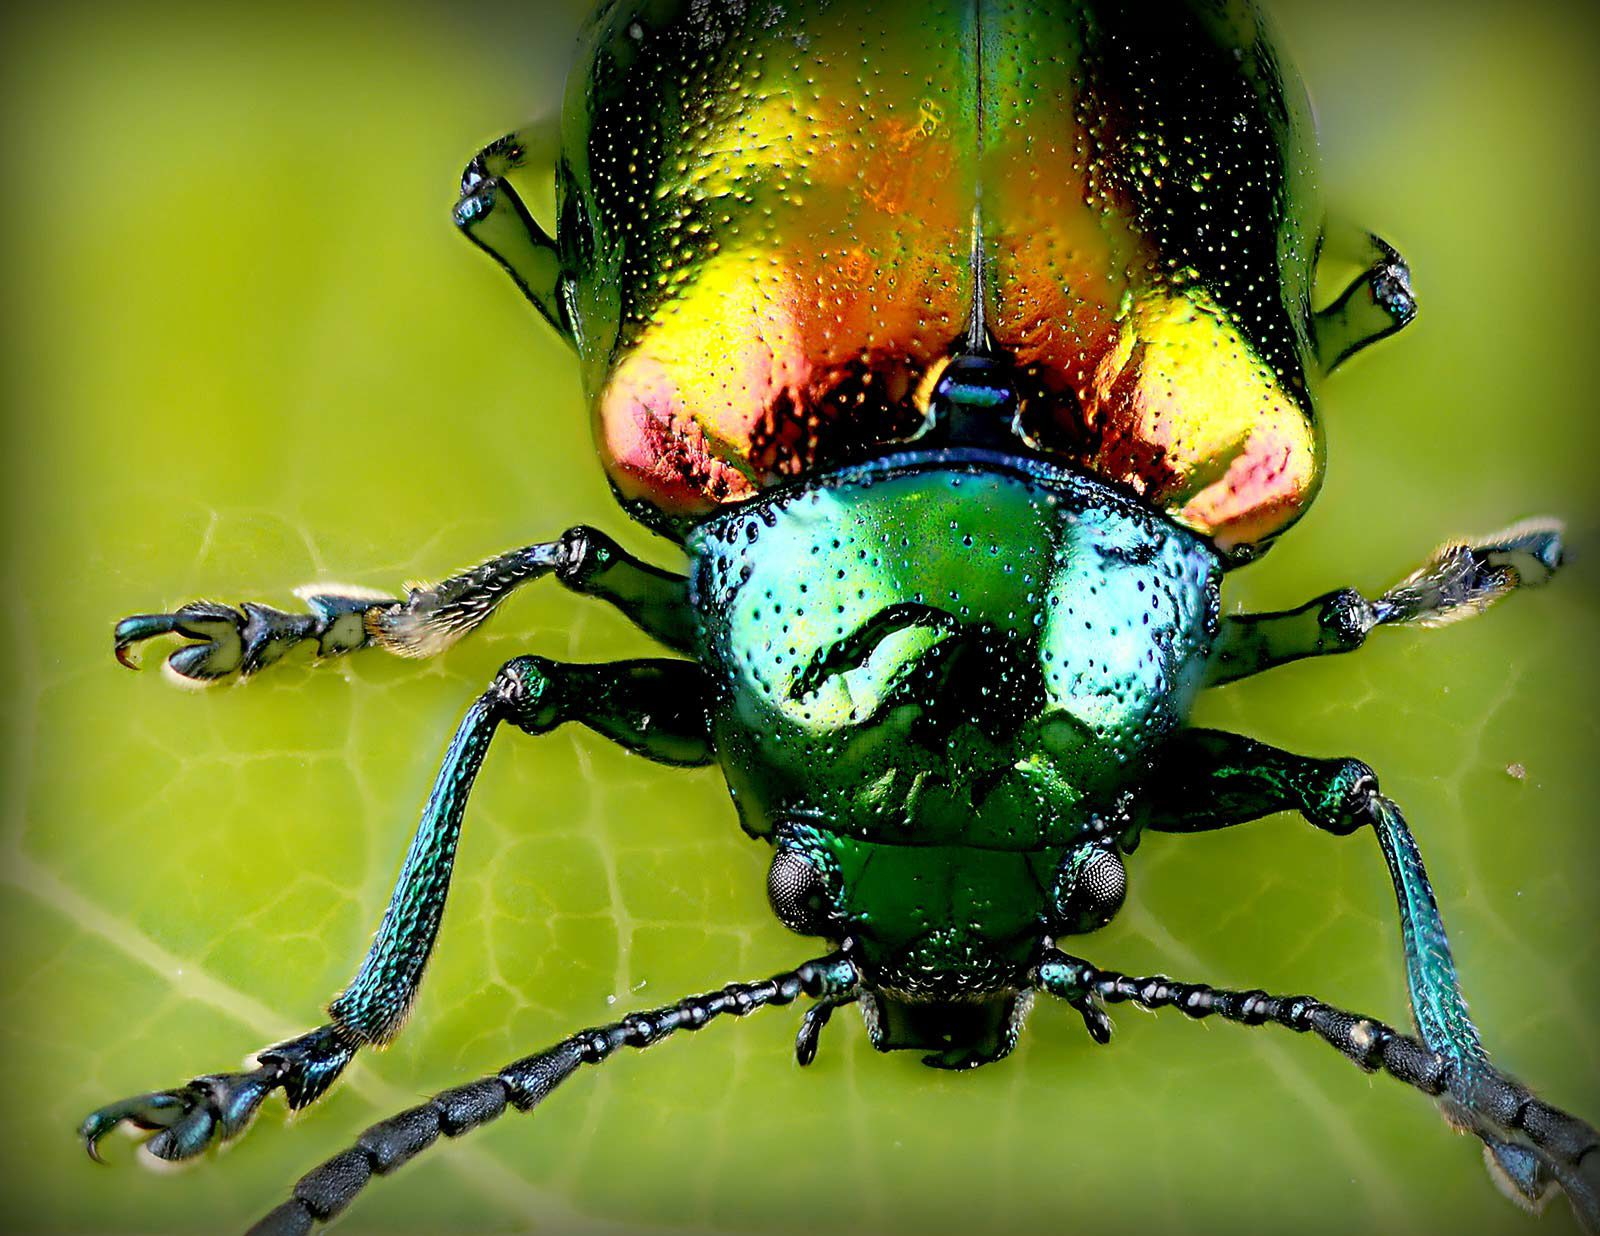 Close-up of colourful beetle on green leaf.